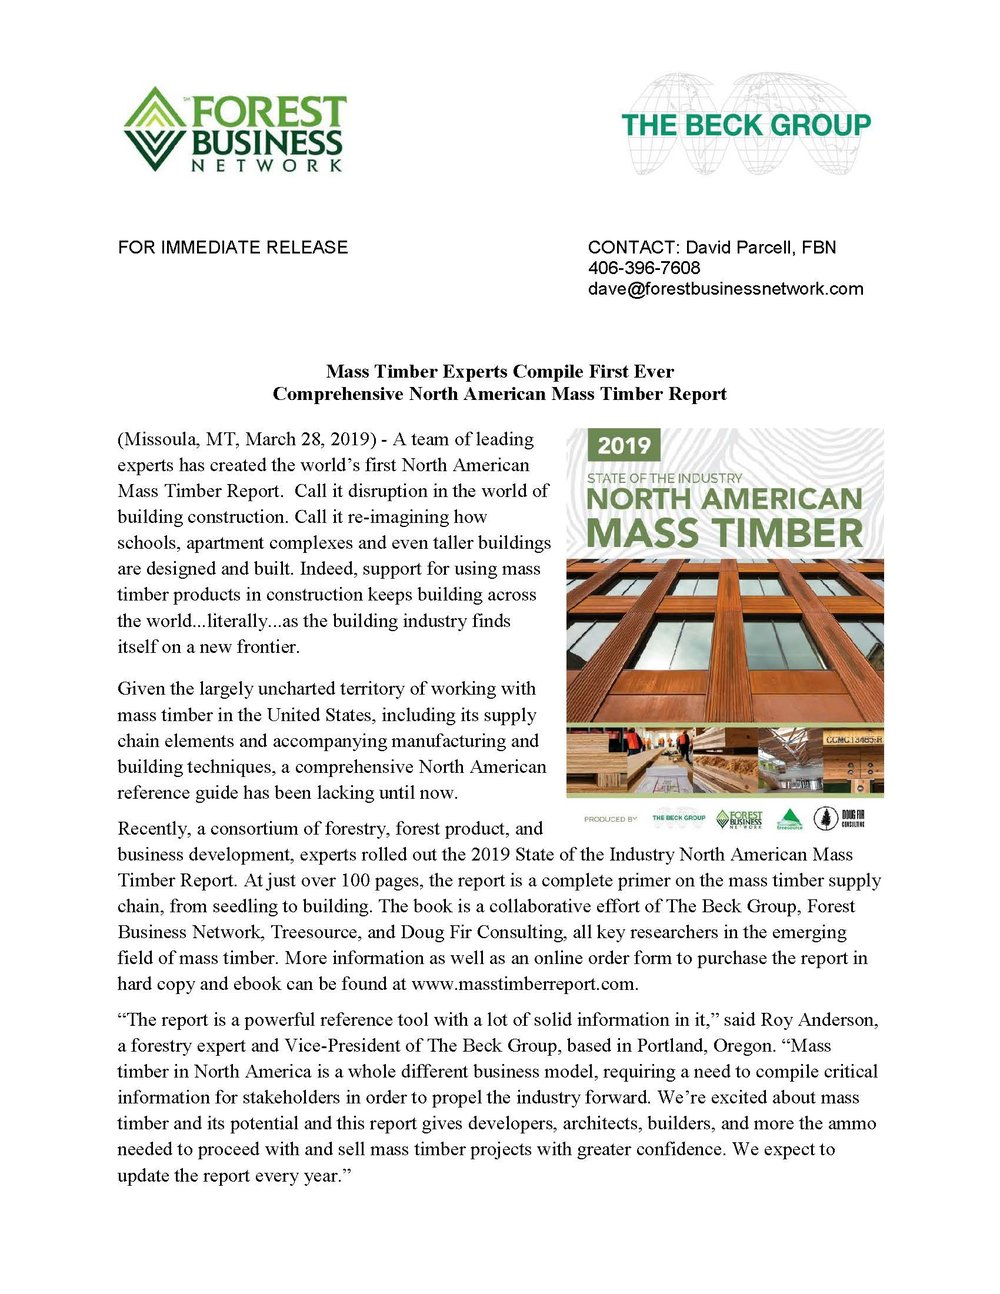 Mass Timber Report Press Release_Page_1.jpg